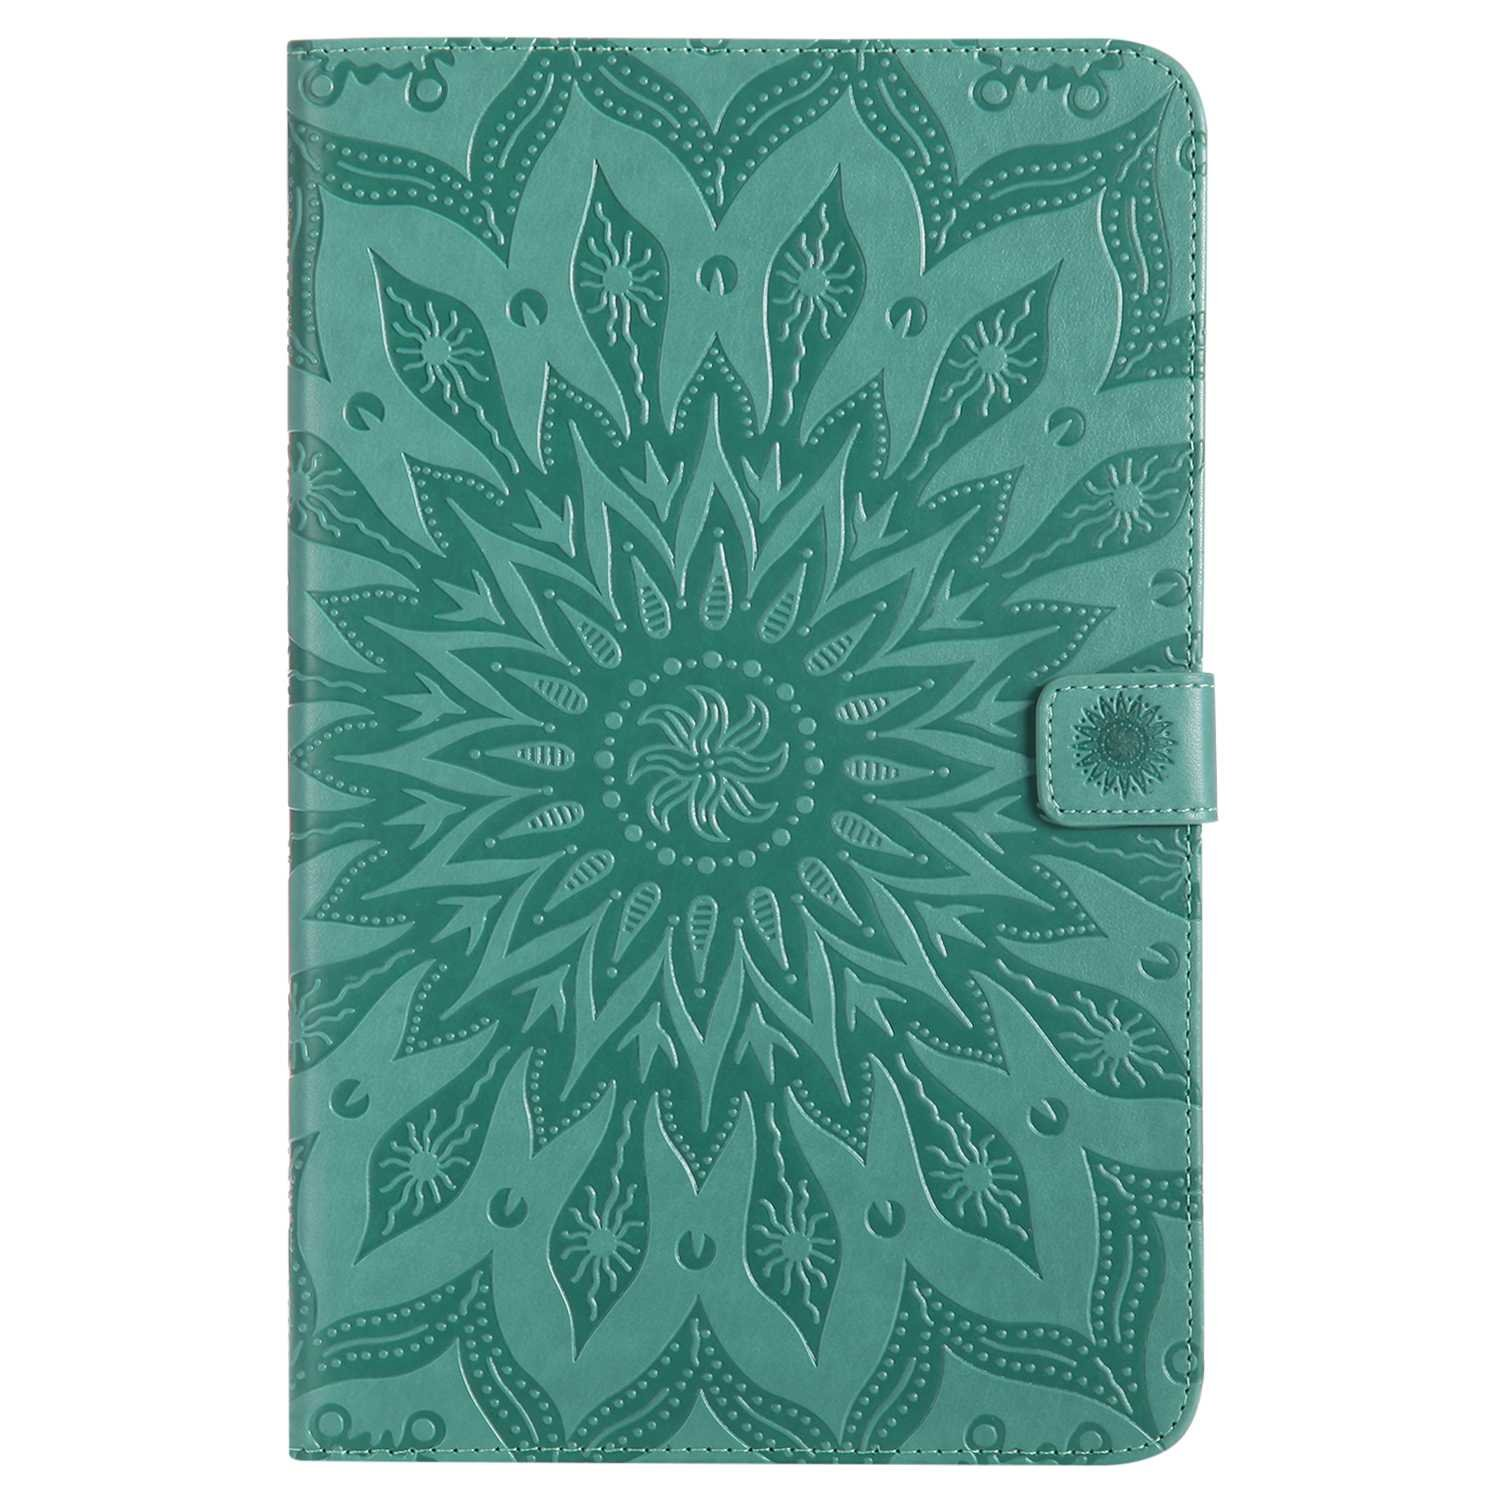 Bear Village Galaxy Tab e 9.6 Inch Case, Anti Scratch Shell with Adjust Stand, Full Body Protective Cover for Samsung Galaxy Tab e 9.6 Inch, Green by Bear Village